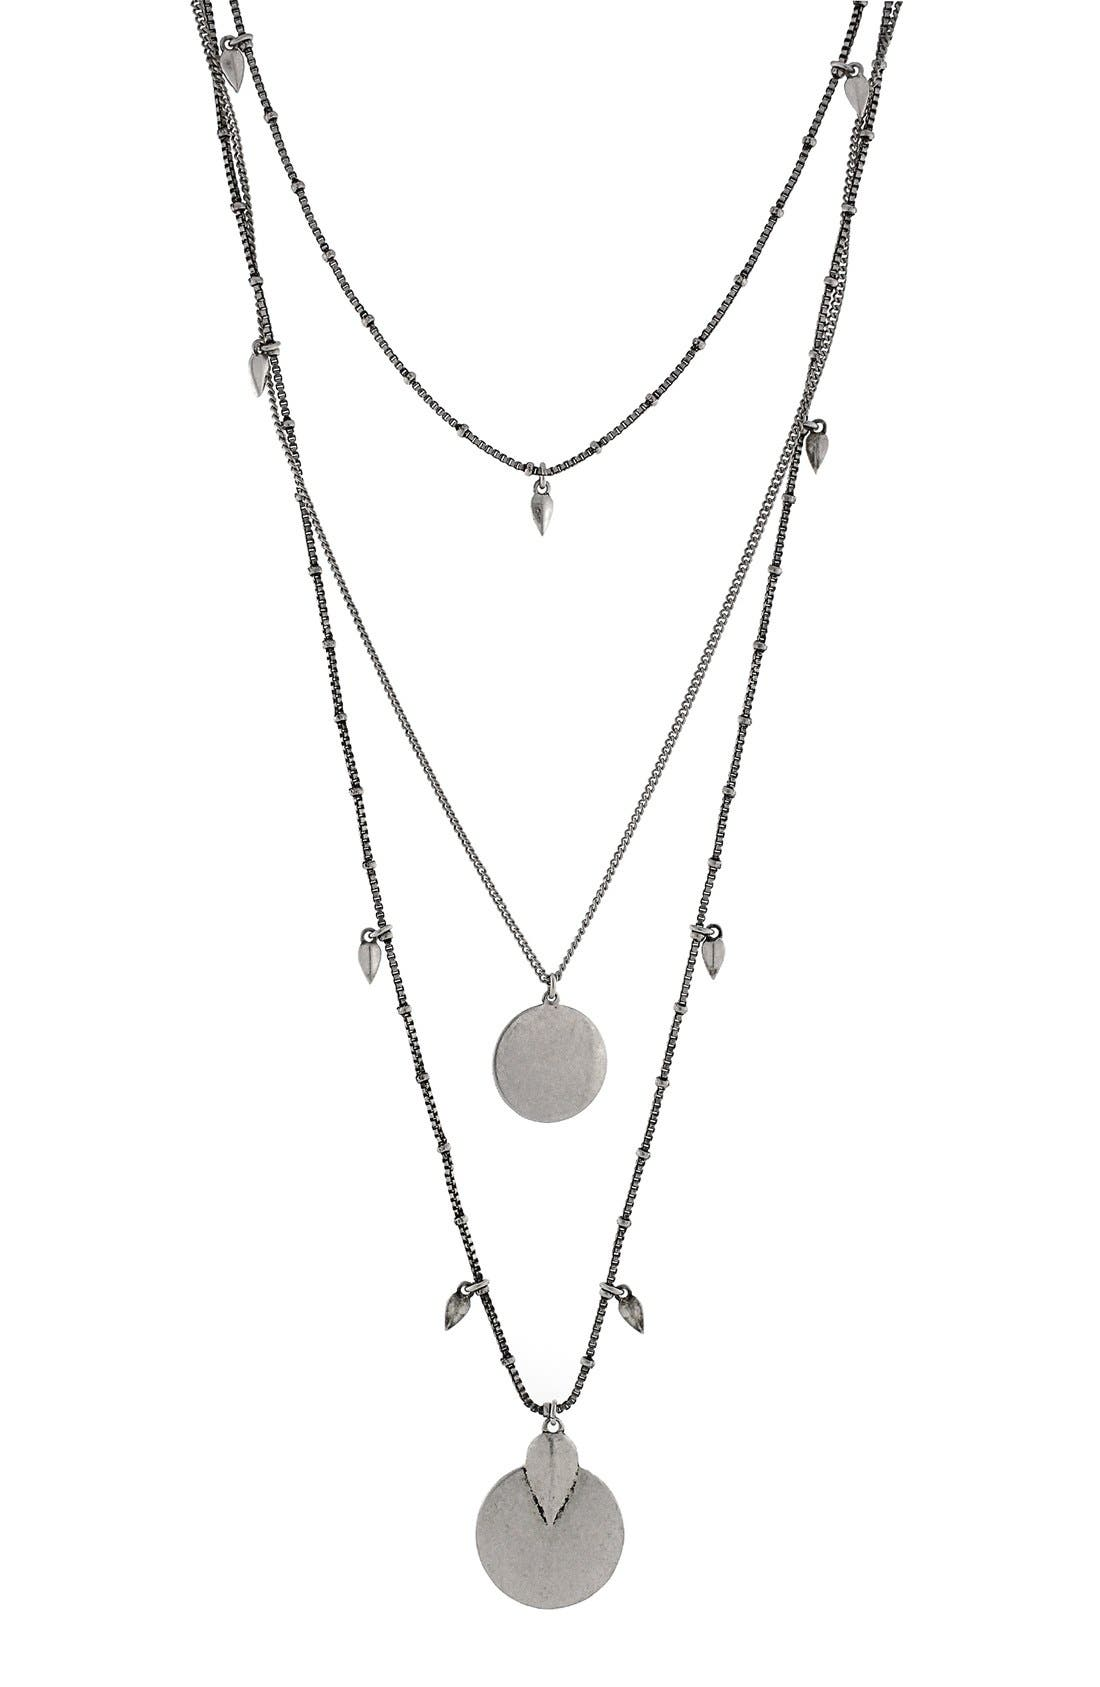 Main Image - Vince Camuto 'Nomad Queen' Layered Pendant Necklace